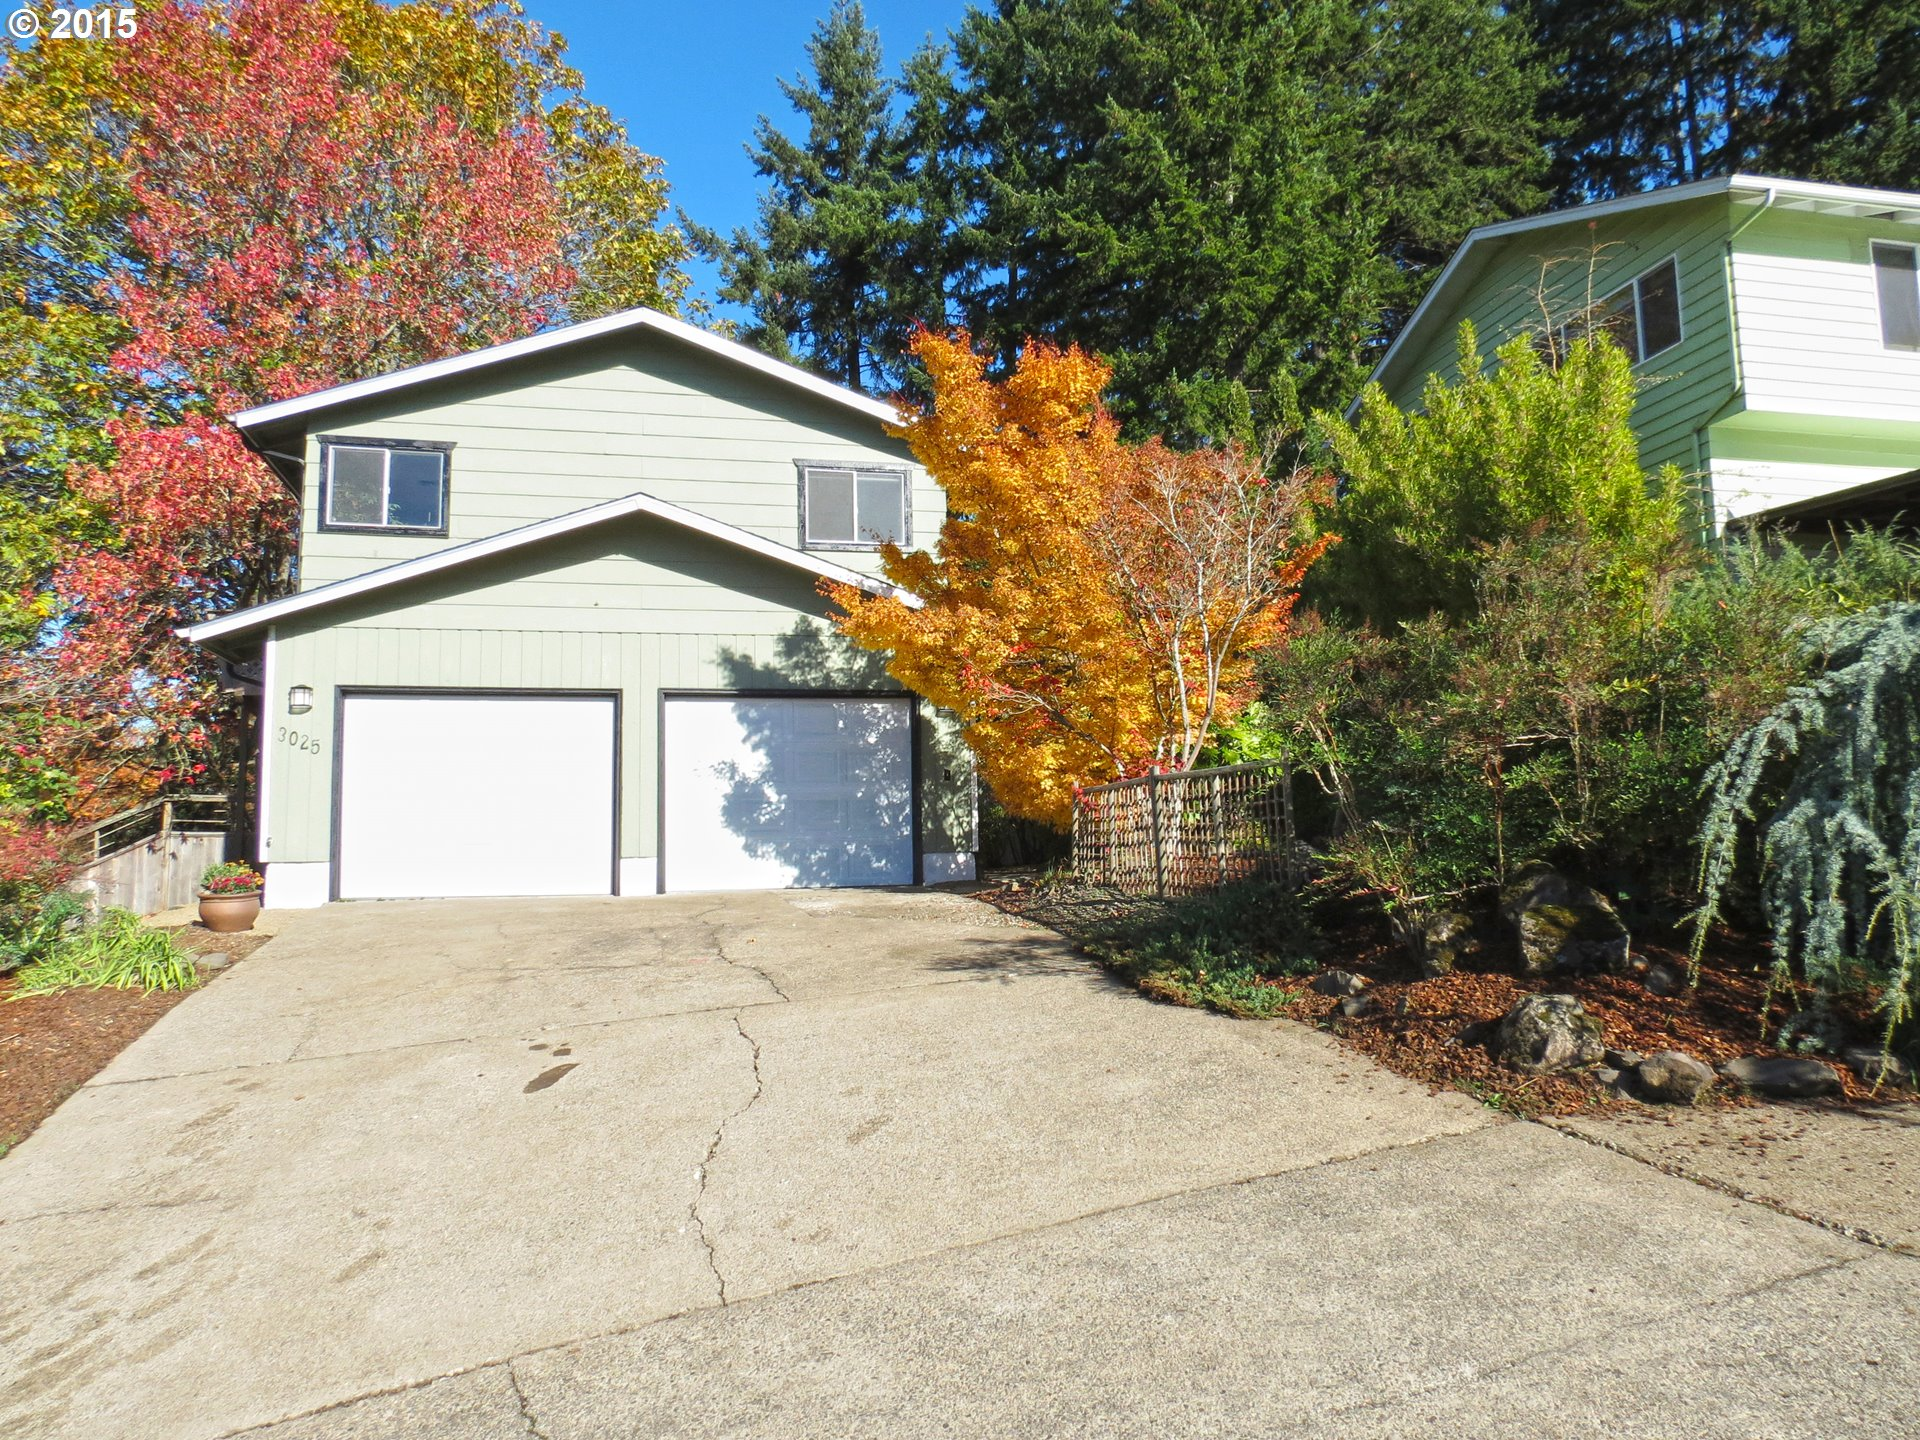 3025 Emerald St, Eugene, OR